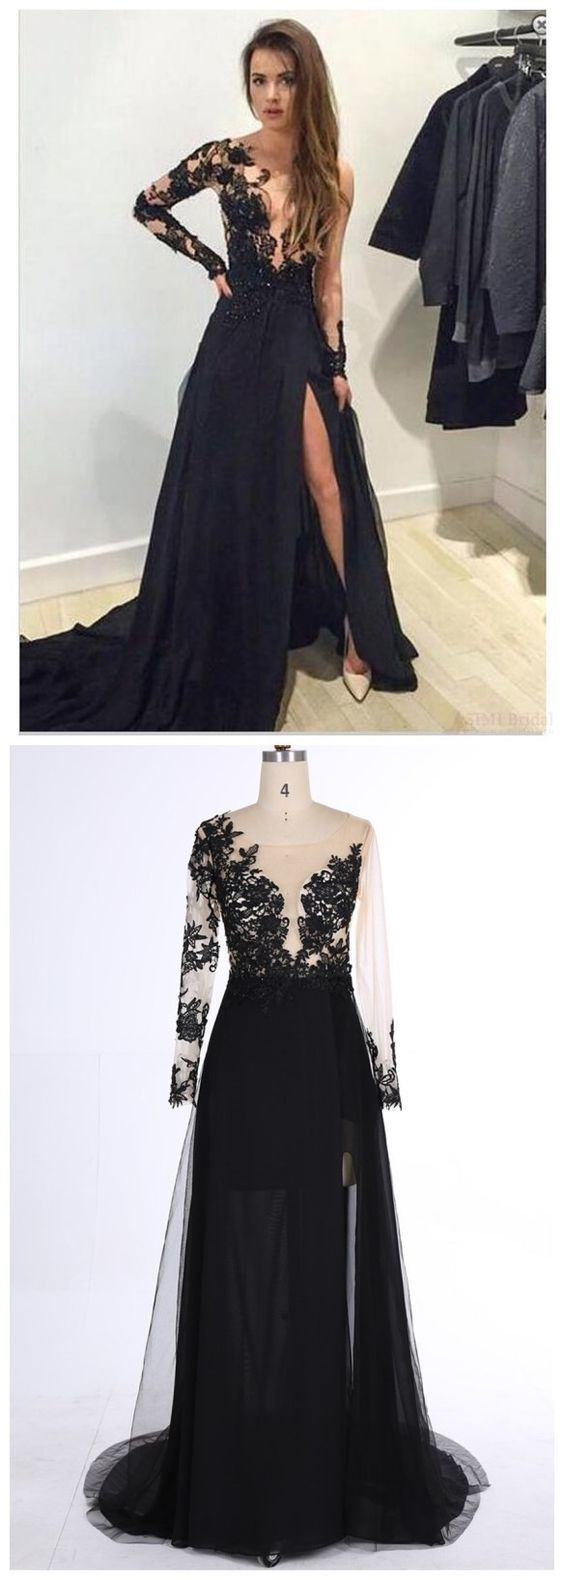 The formal dress - Charming Prom Dress Long Sleeve Prom Dress Formal Evening Dress Formal Gown